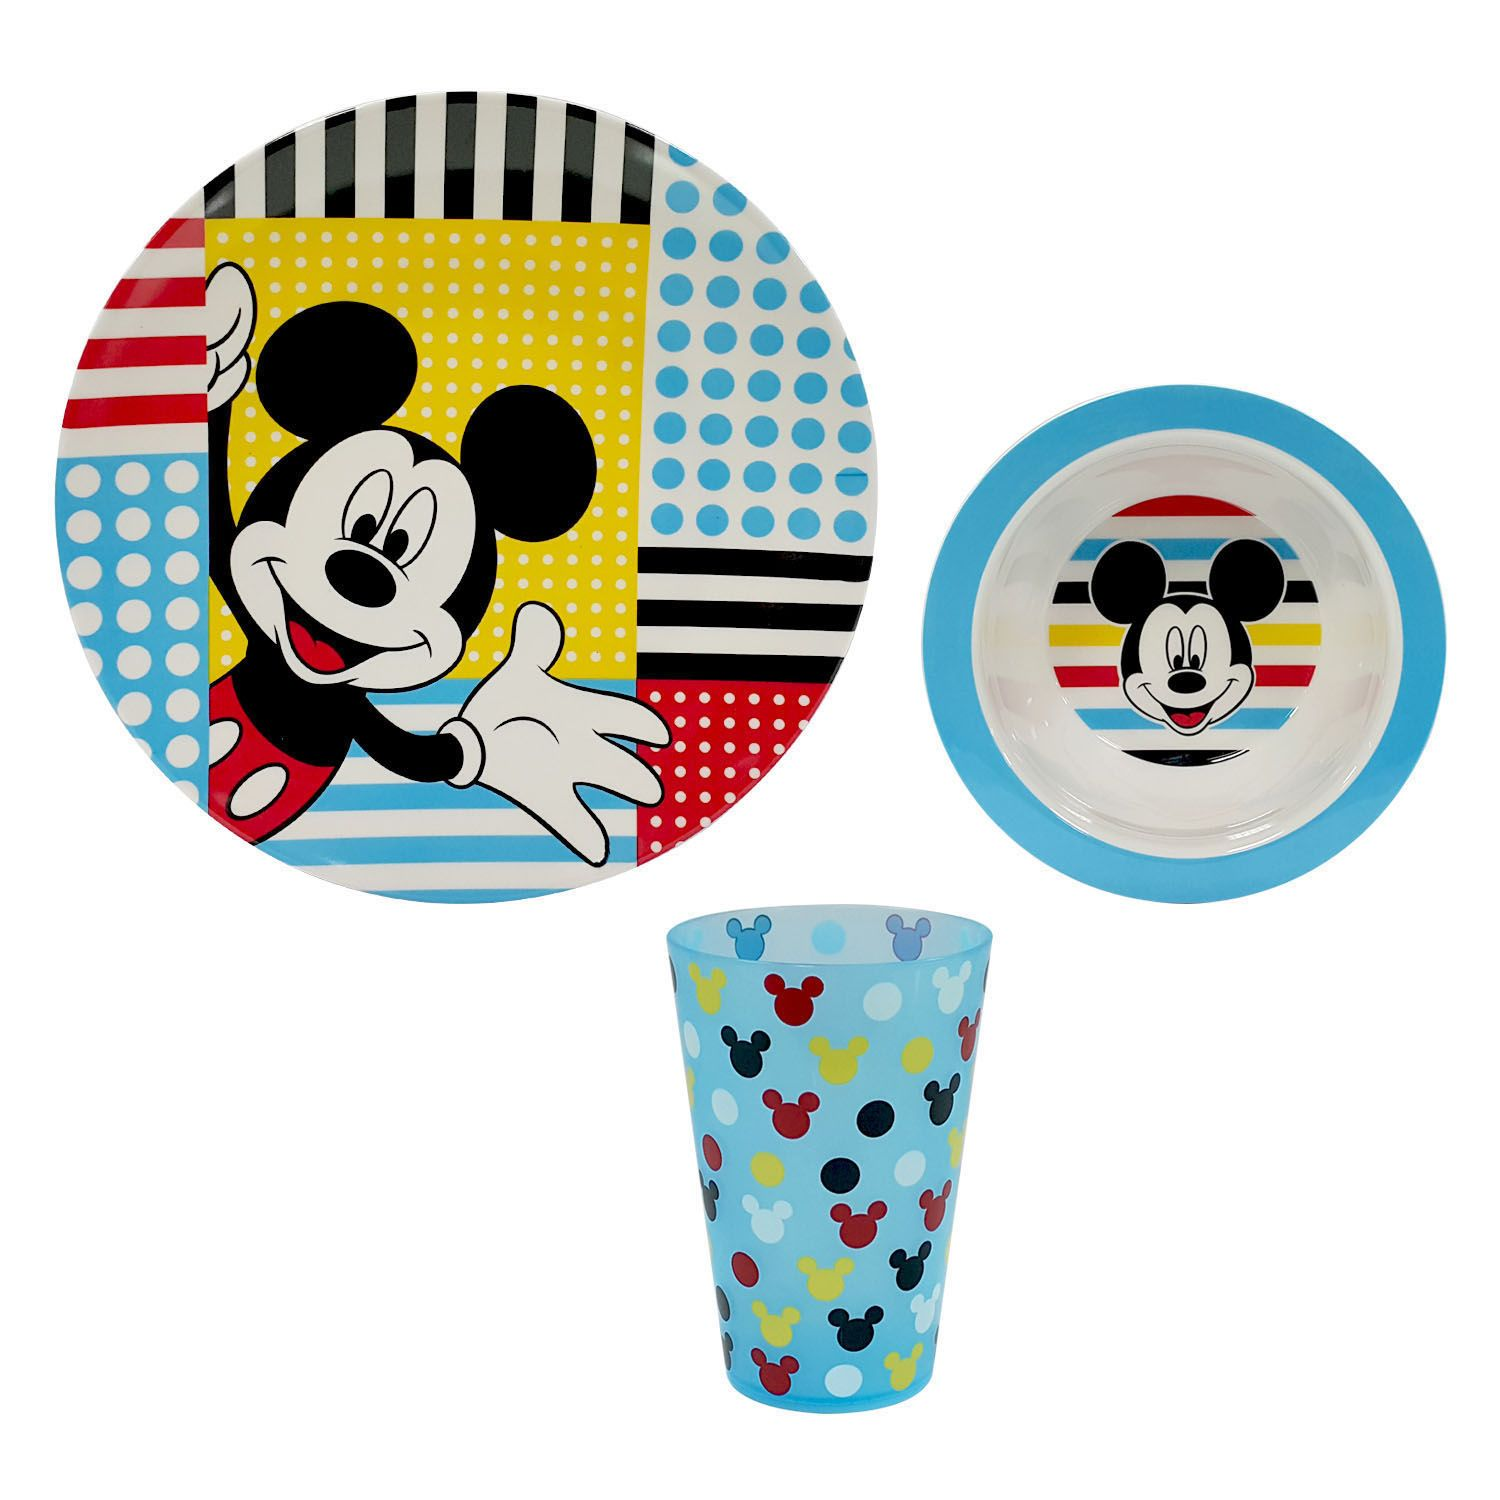 Disney\u0027s Mickey Mouse 3-pc. Kid\u0027s Dinnerware Set by Jumping Beans®  sc 1 st  Kohl\u0027s : mickey mouse dinnerware set - pezcame.com